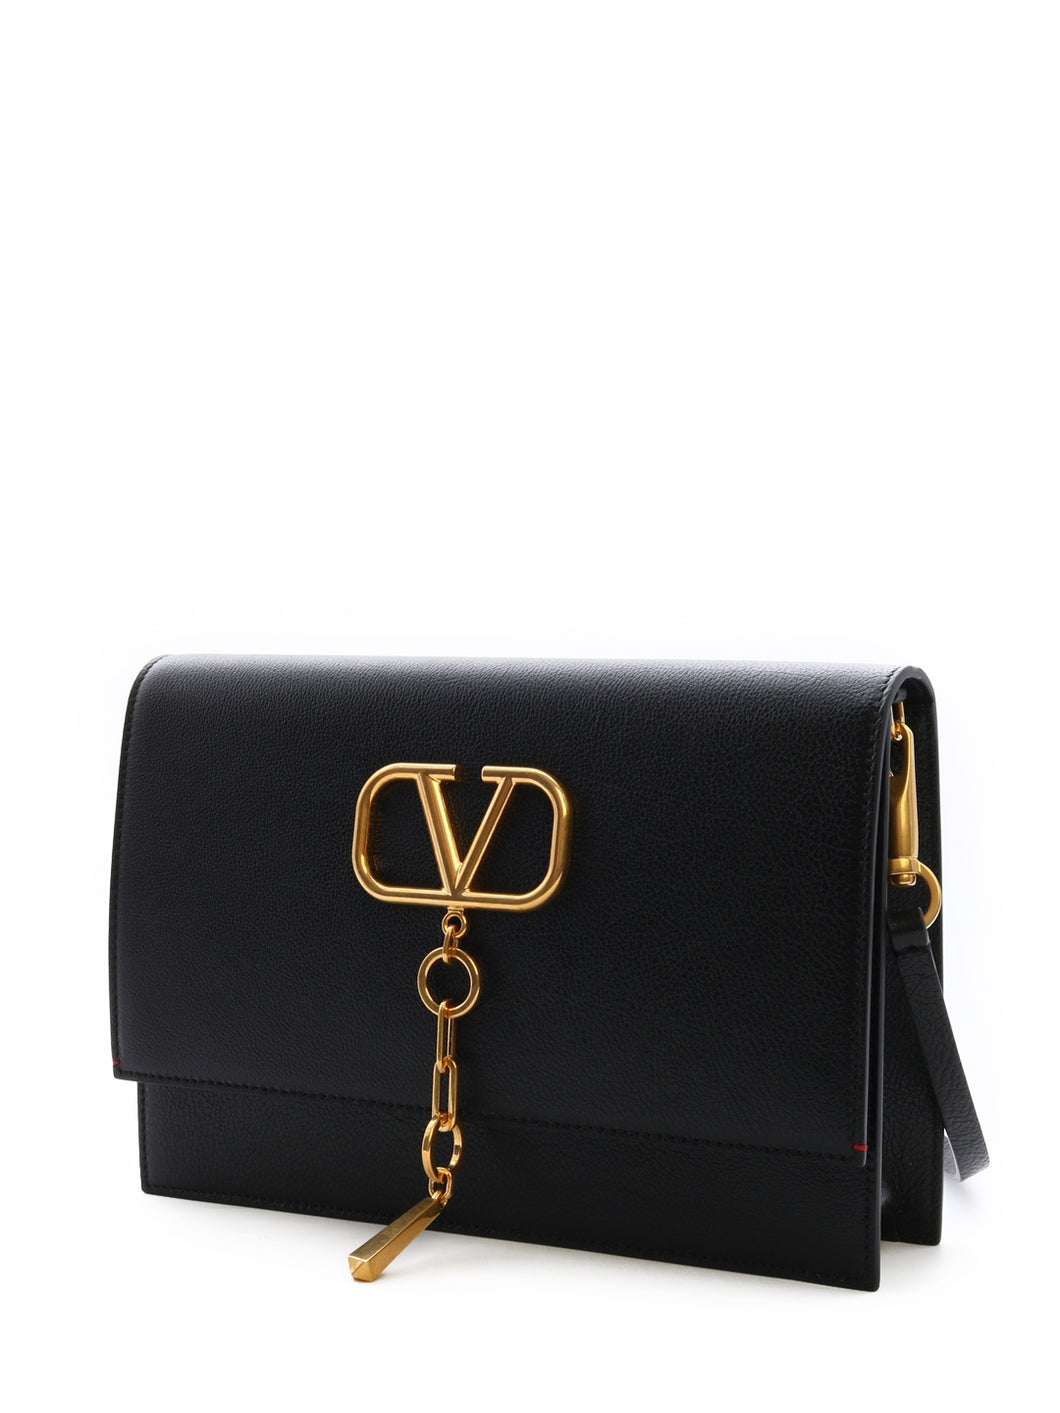 VALENTINO - Valentino Garavani VCASE cross-body bag